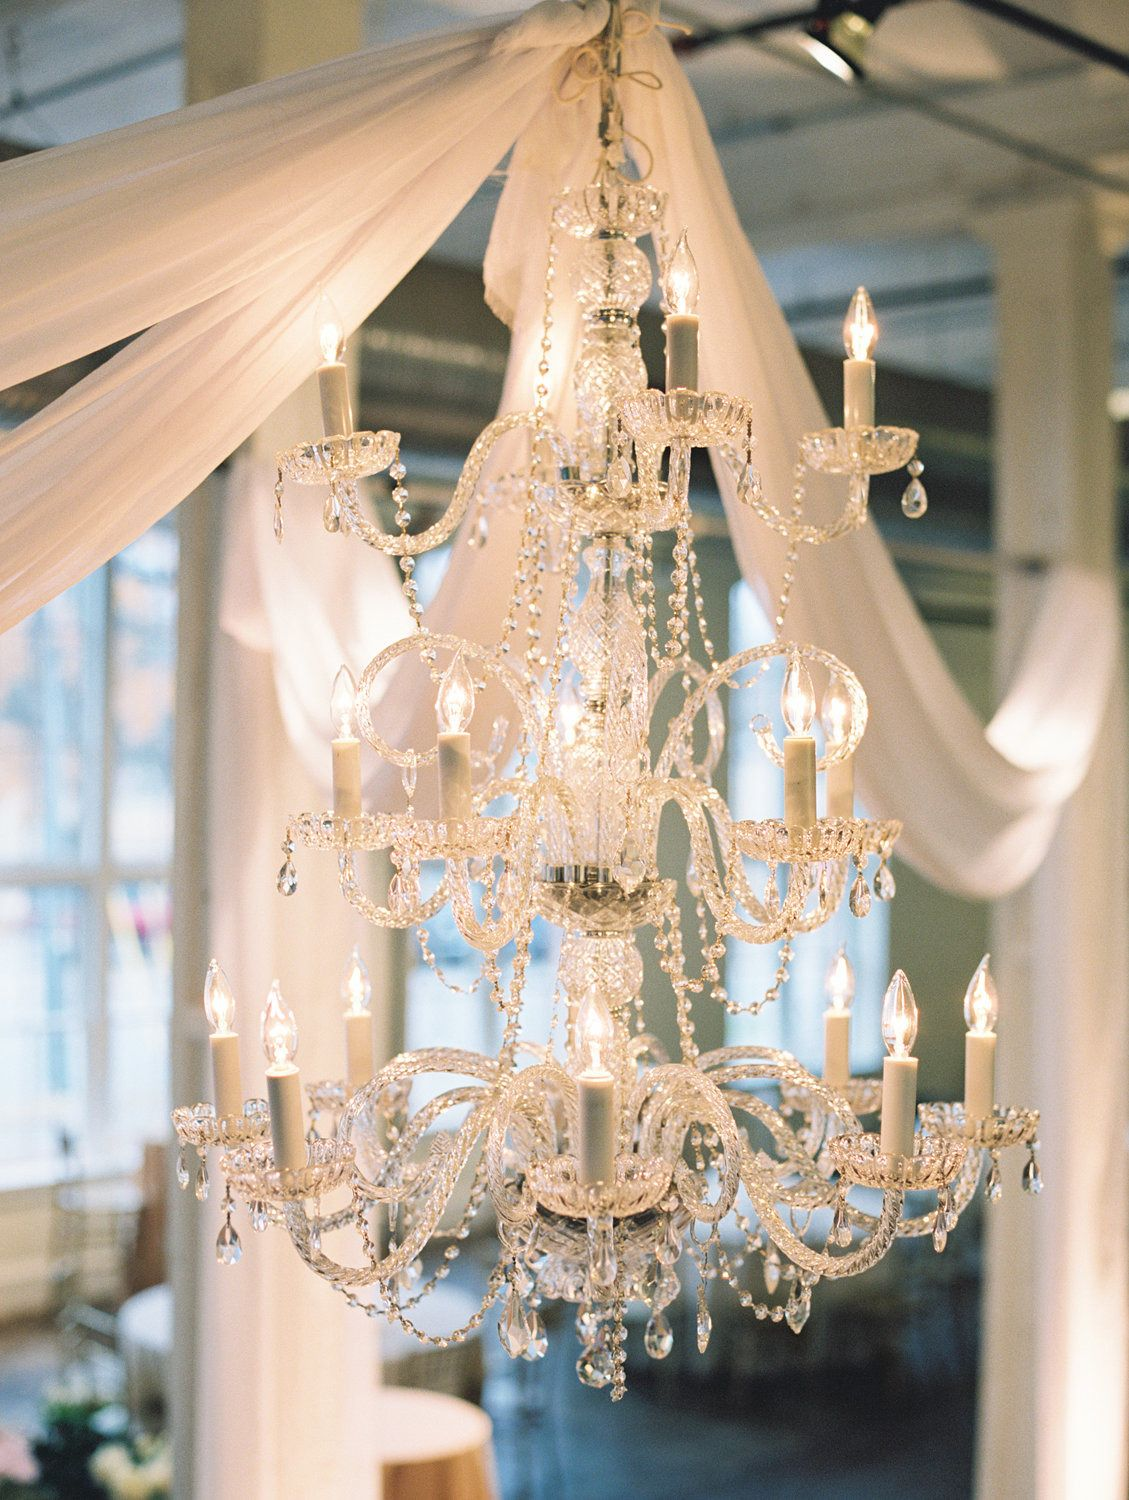 #lighting, #draping, #chandelier Photography: Landon Jacob Productions - landonjacob.com Read More: http://www.stylemepretty.com/2014/10/16/sparkling-sequin-winter-wedding-in-columbia-sc/